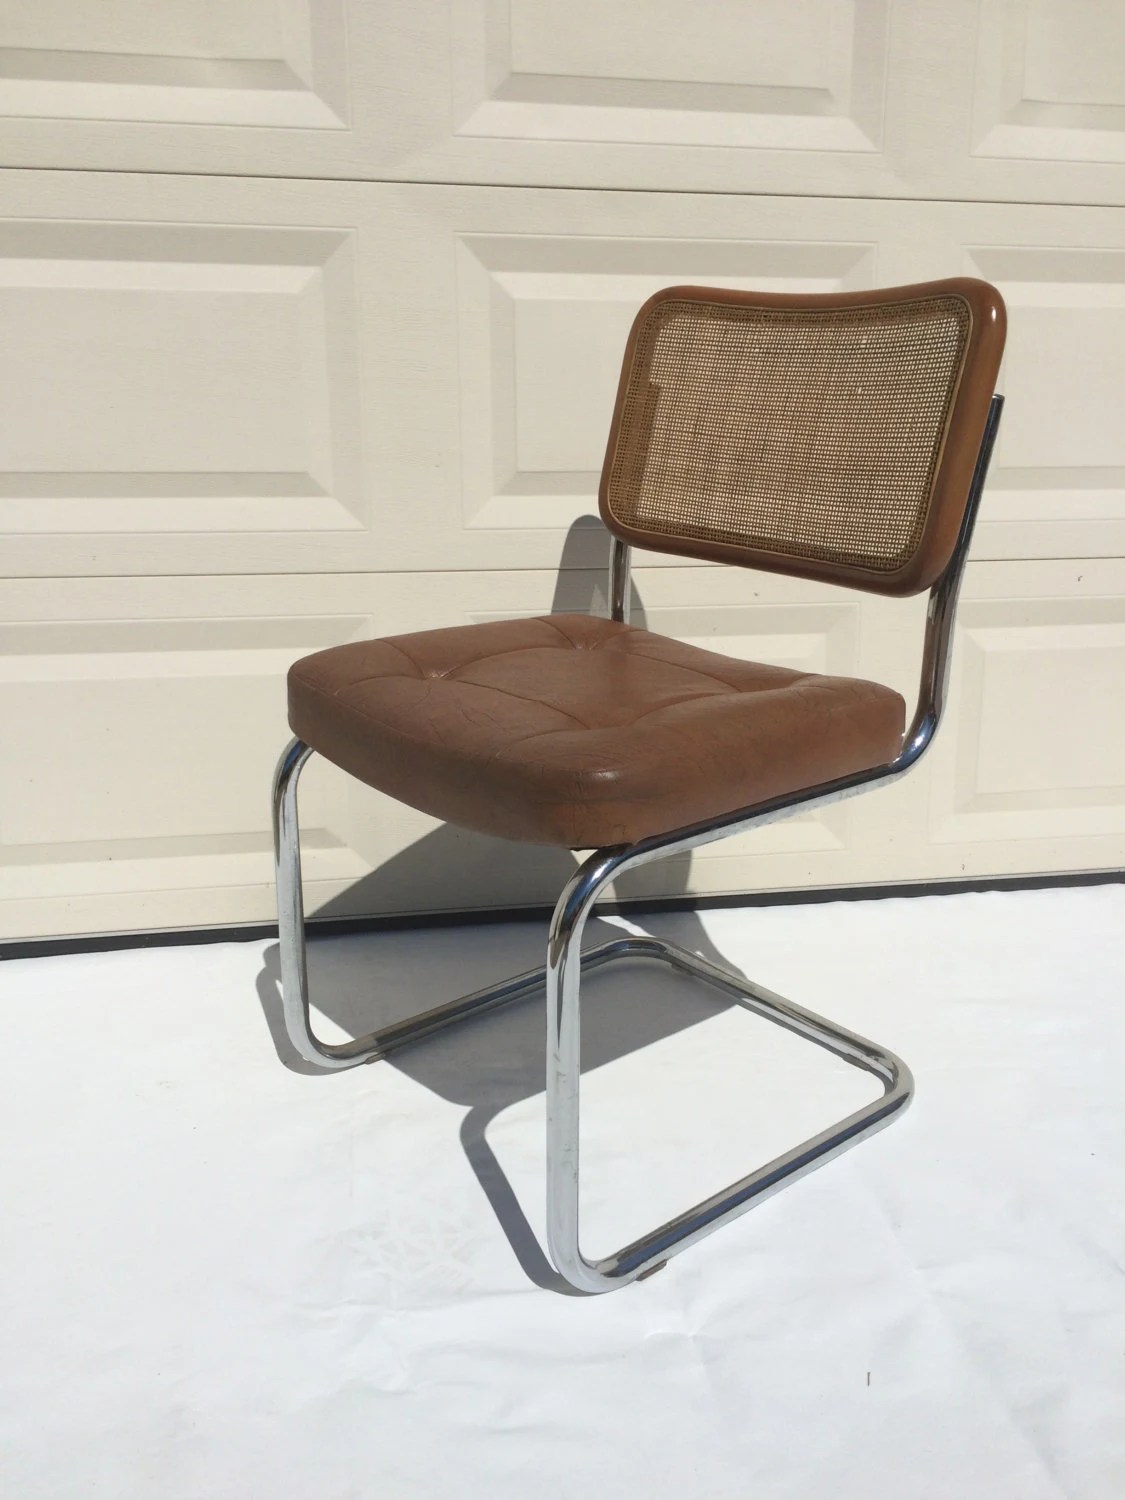 chromcraft chairs vintage replacement wood chair seats mid century marcel breuer style cantilever